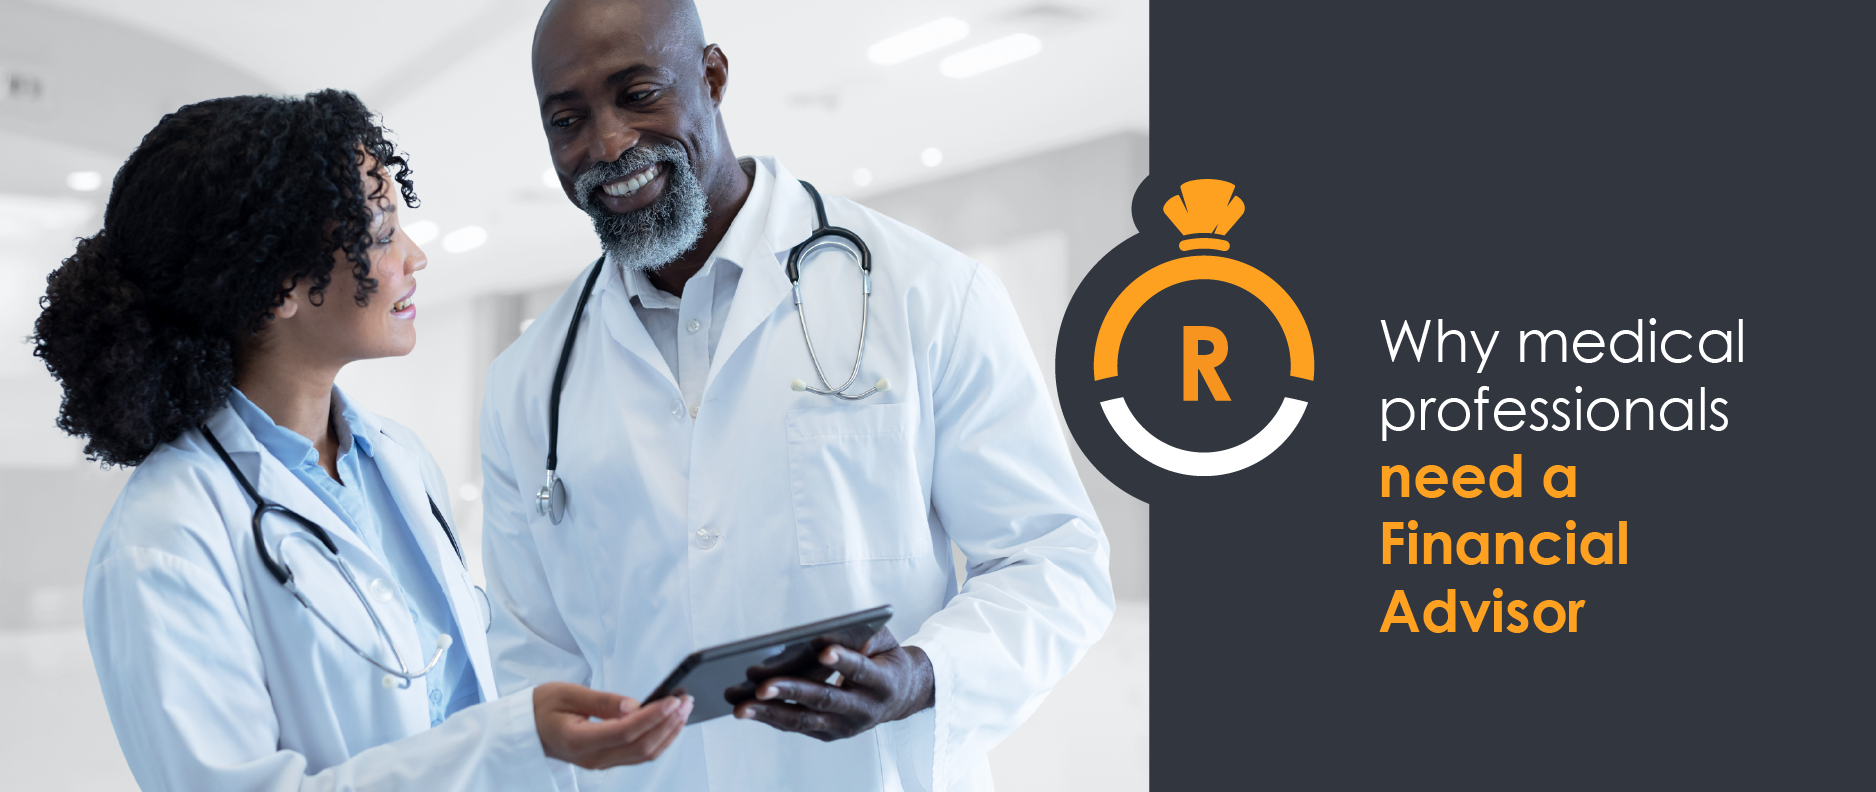 Why medical professionals need a Financial Advisor